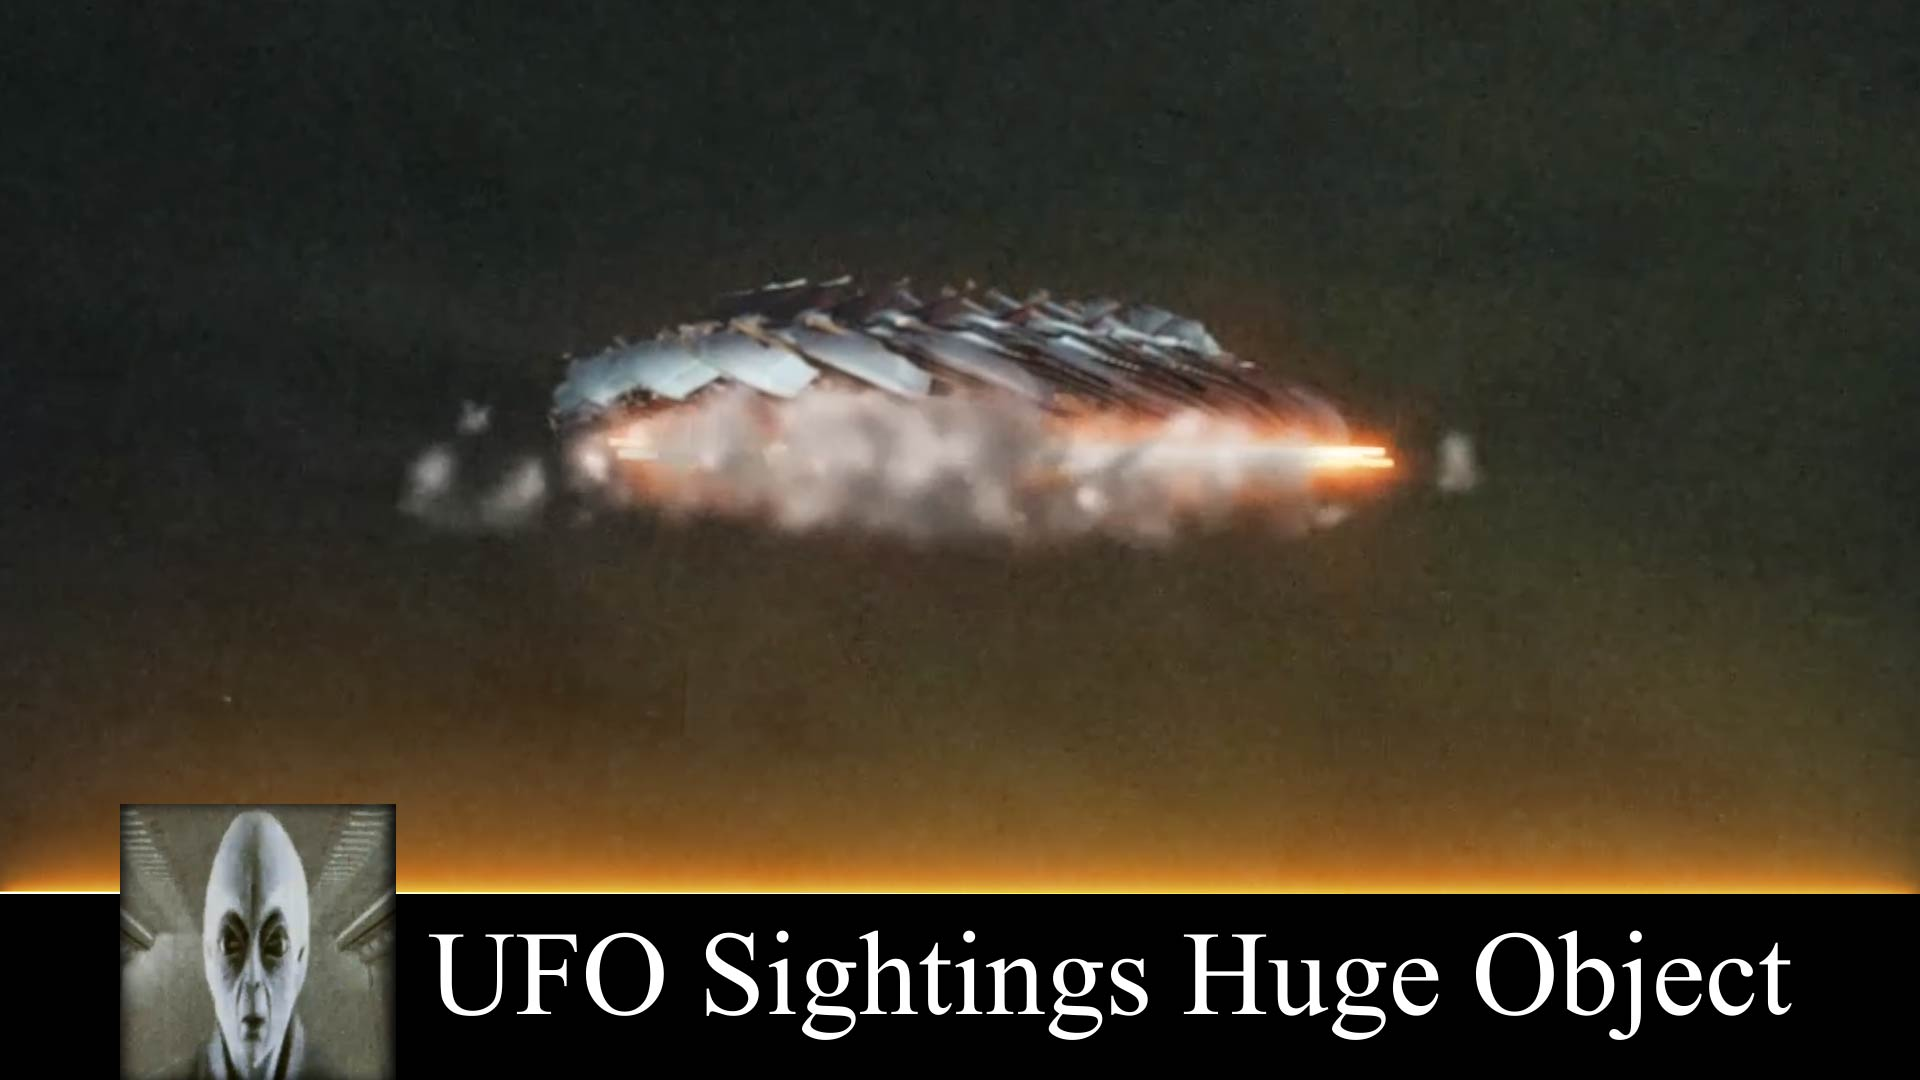 UFO Sightings Huge Object October 21st 2018